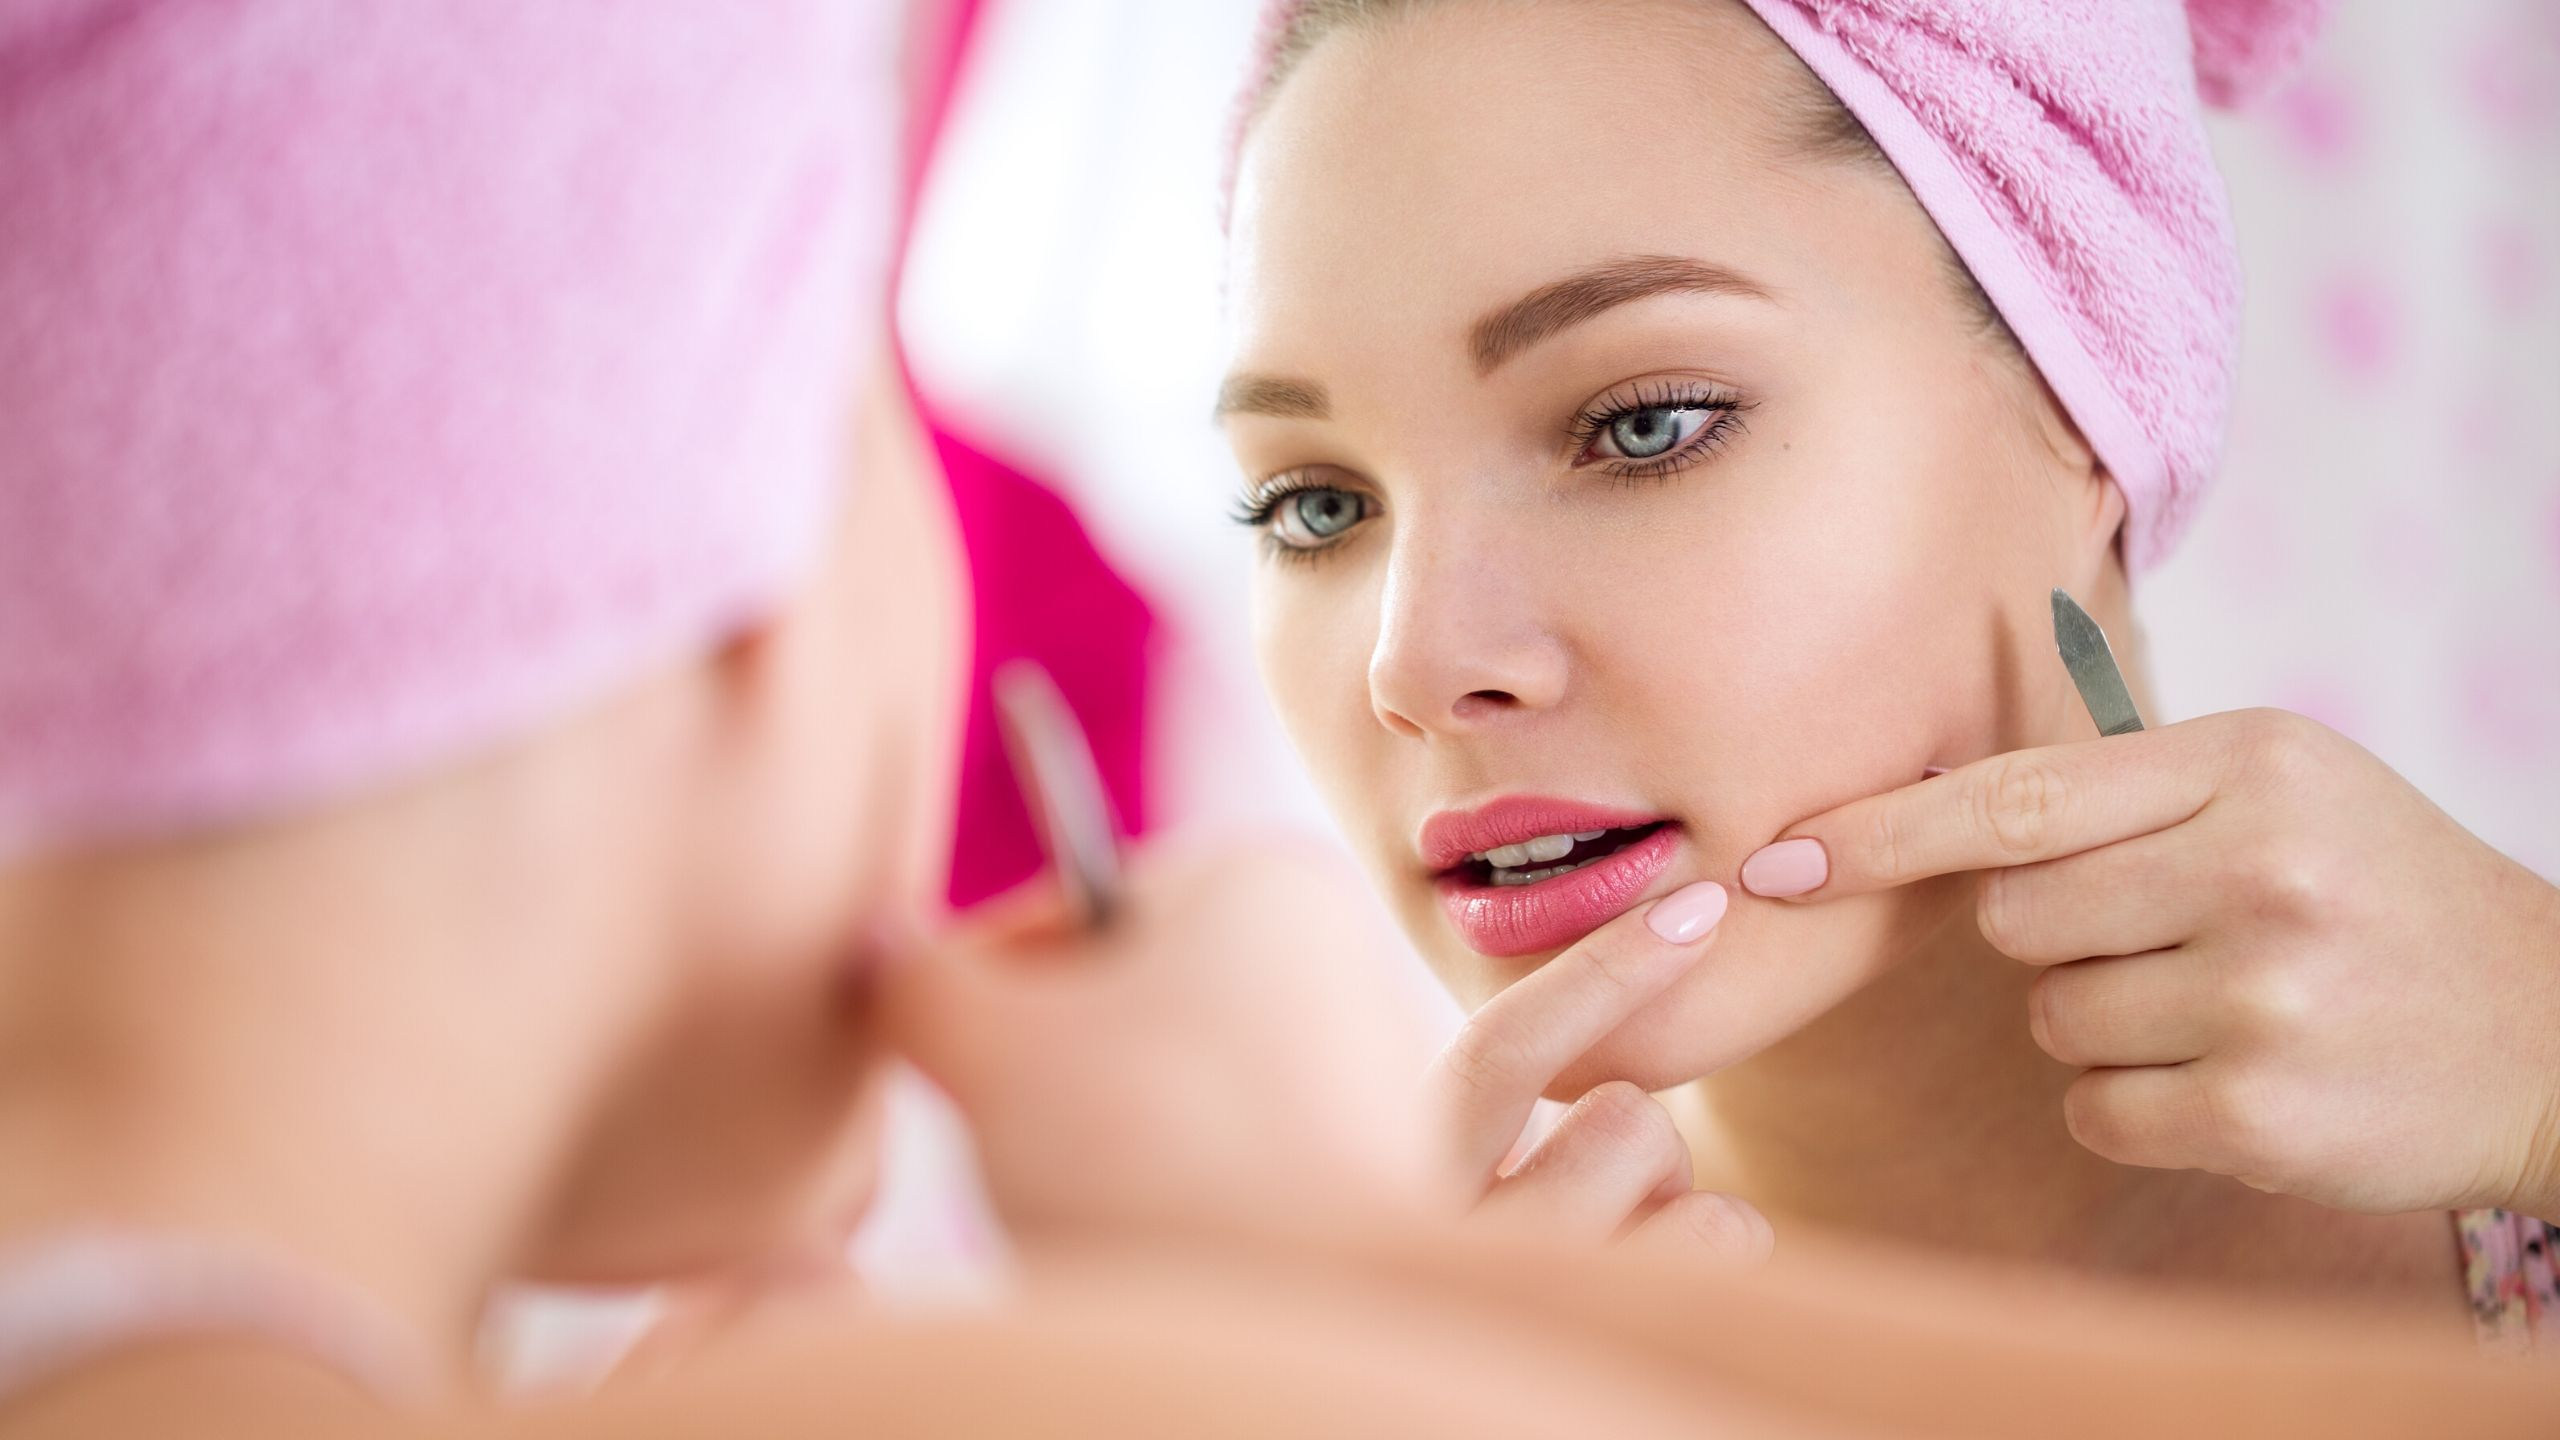 Remove Pimples (Acne) Overnight Naturally at Home